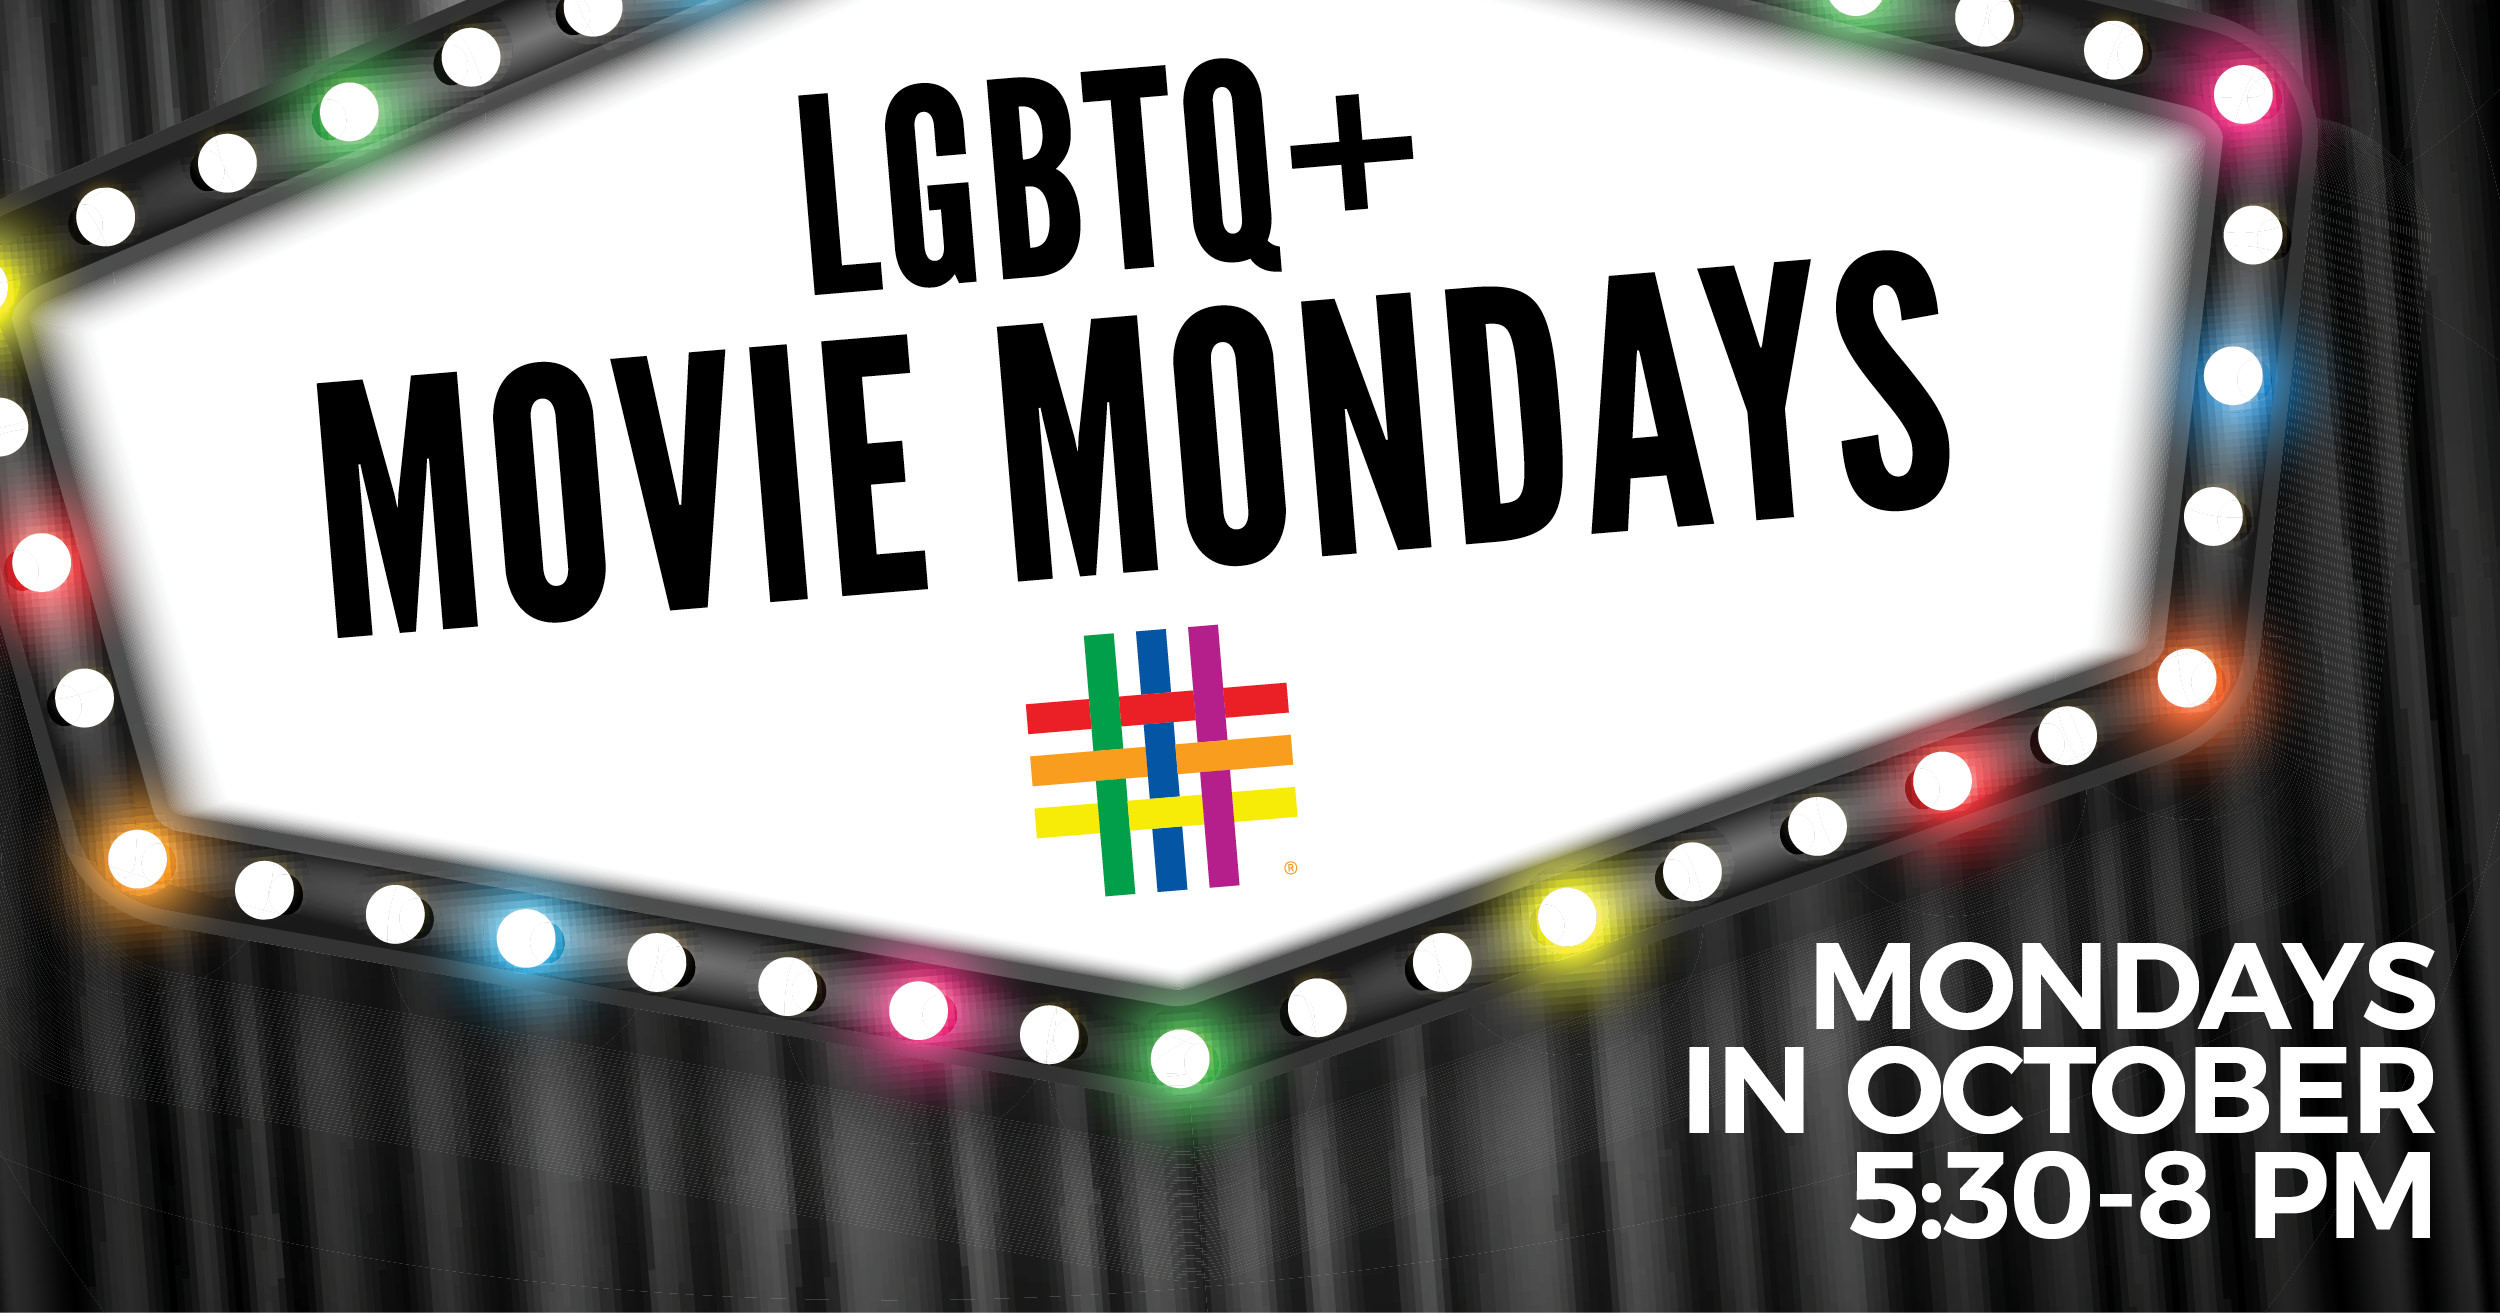 LGBTQ+ Movie Mondays at Brooklyn Community Pride Center